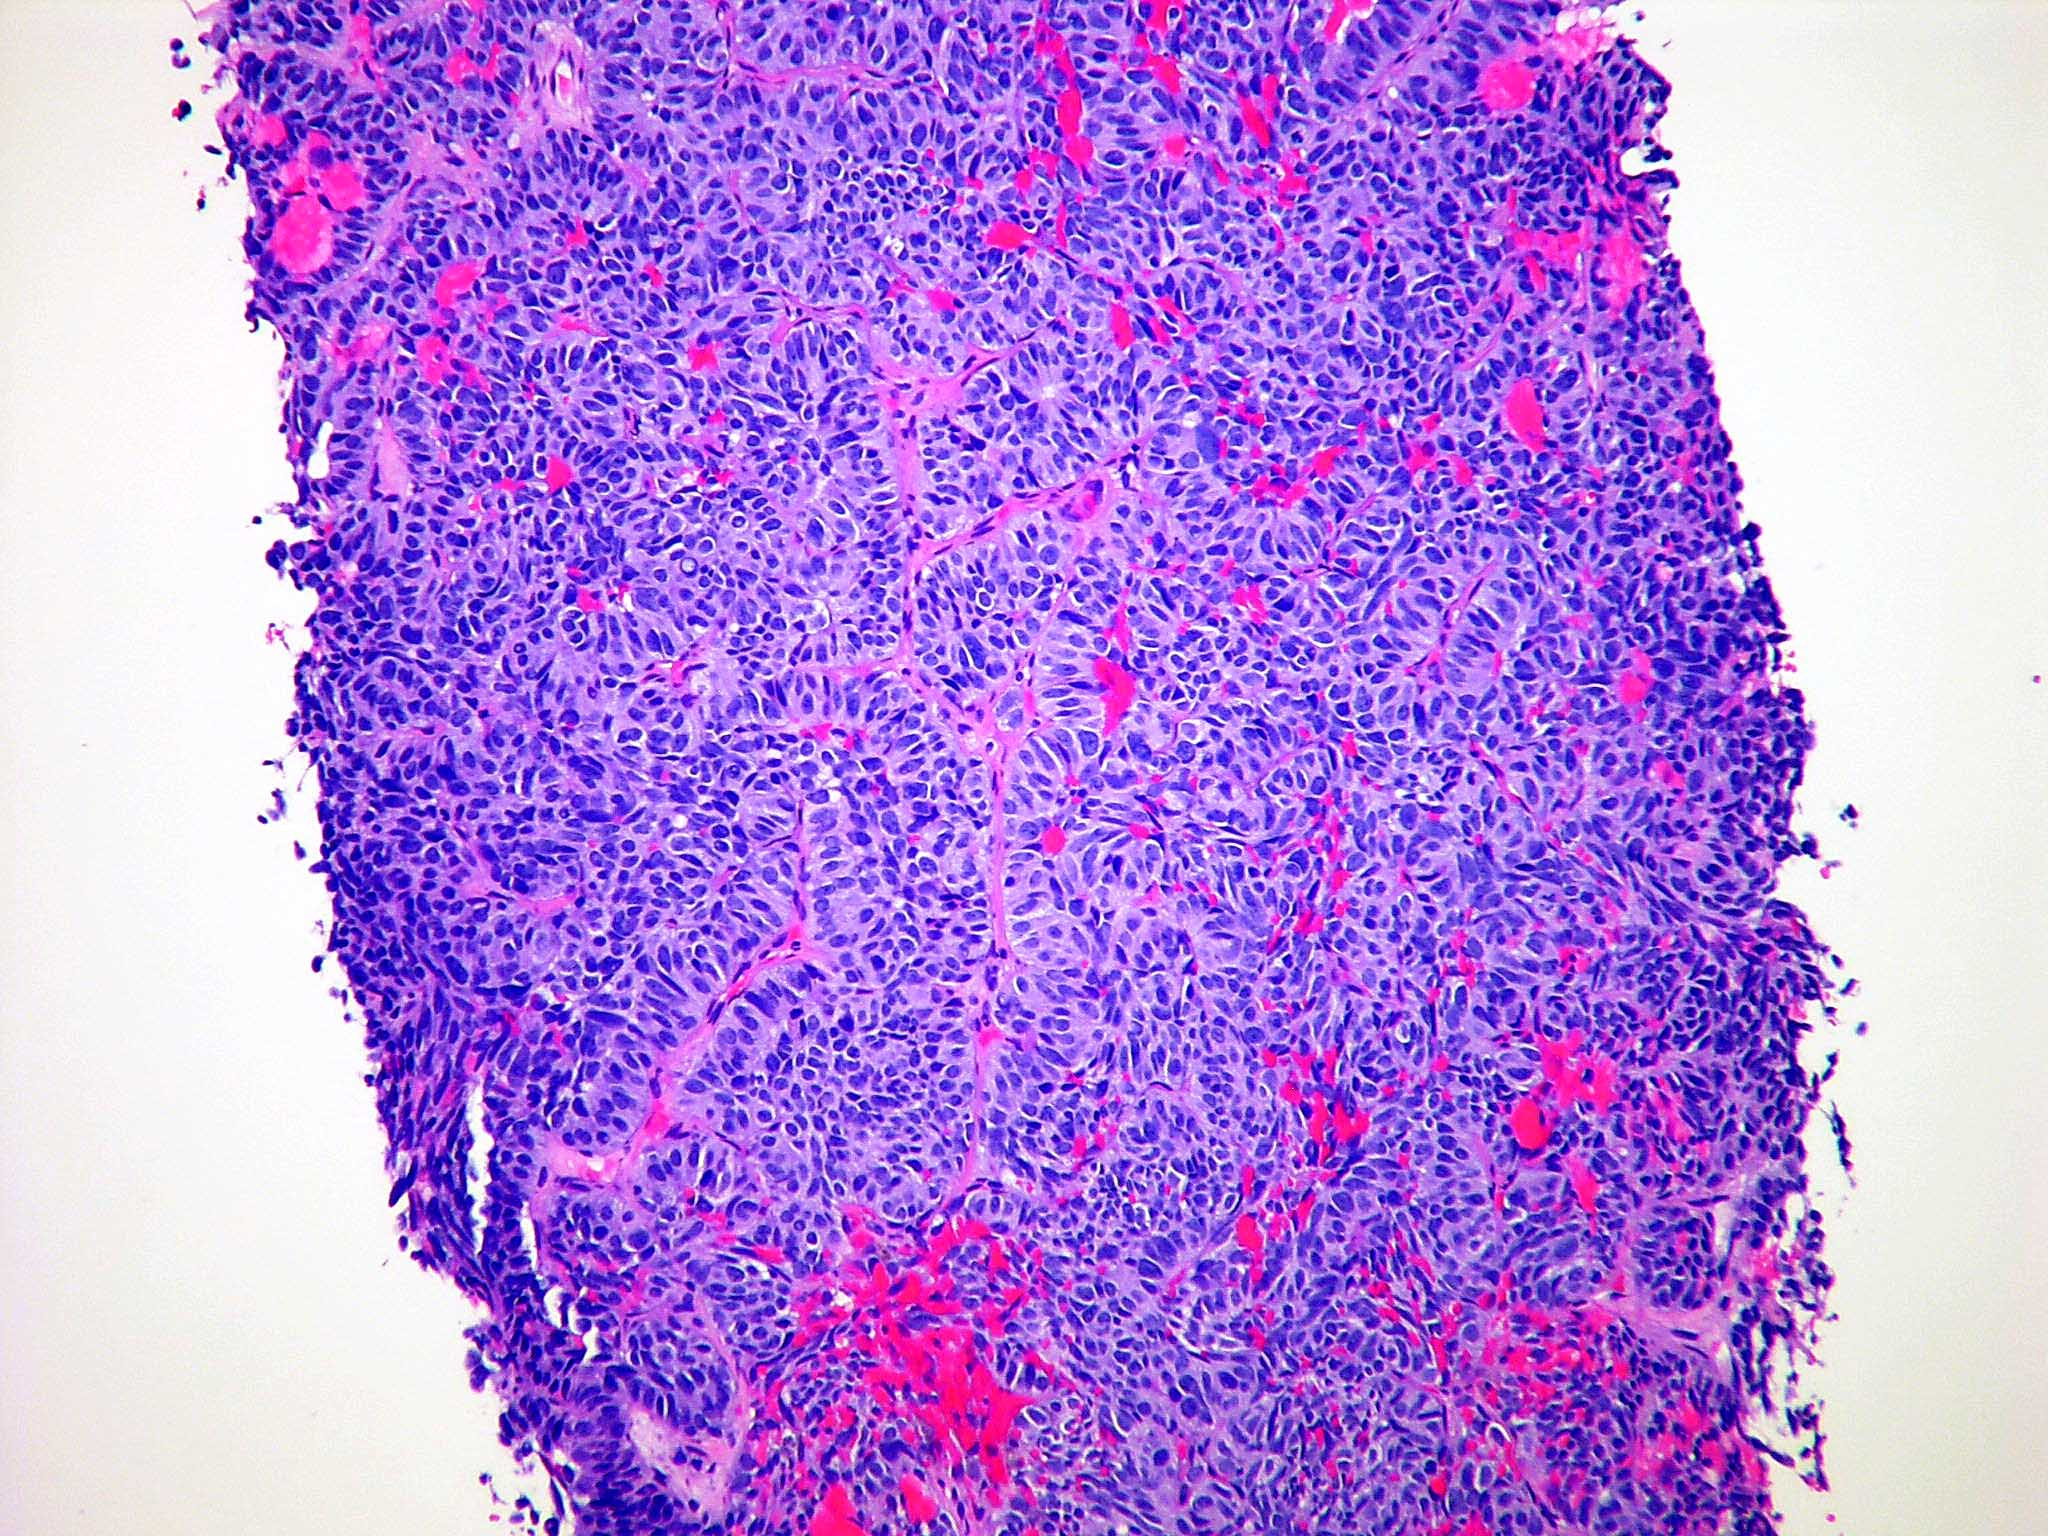 Atypical carcinoid tumor of lung metastatic to adrenal gland